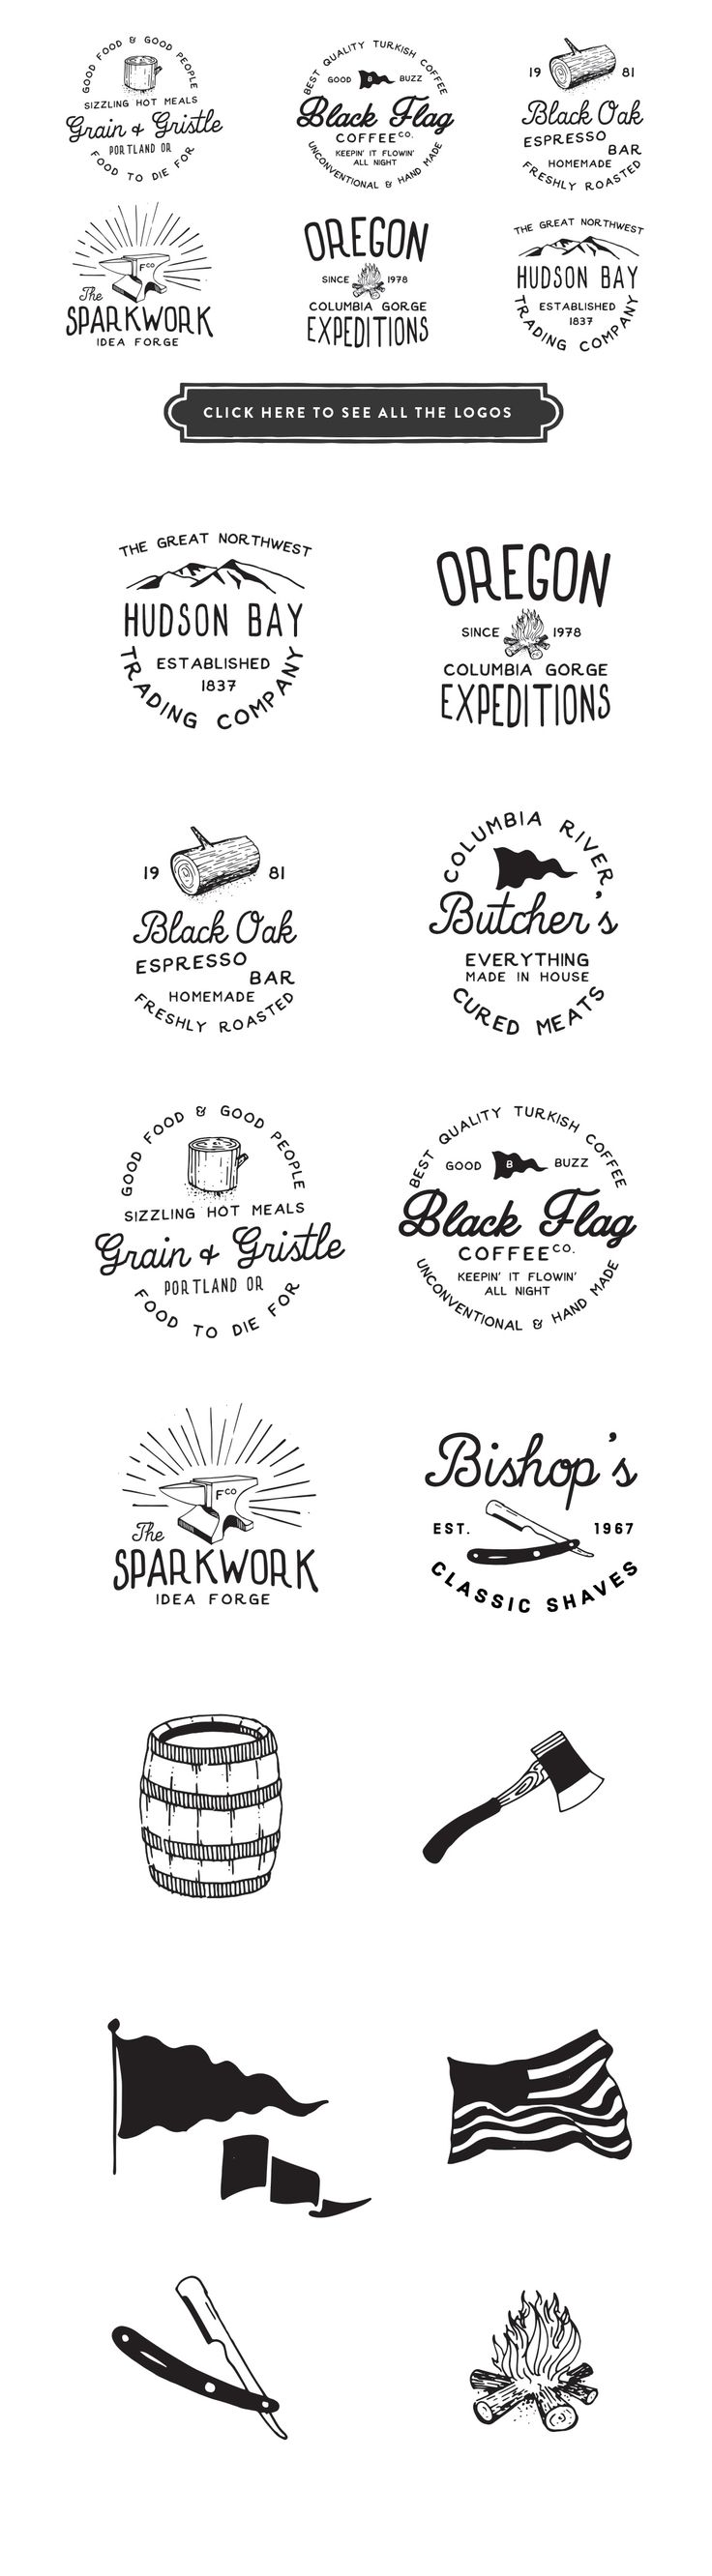 The Vintage Branding Kit by RetroSupply Co. on Creative Market